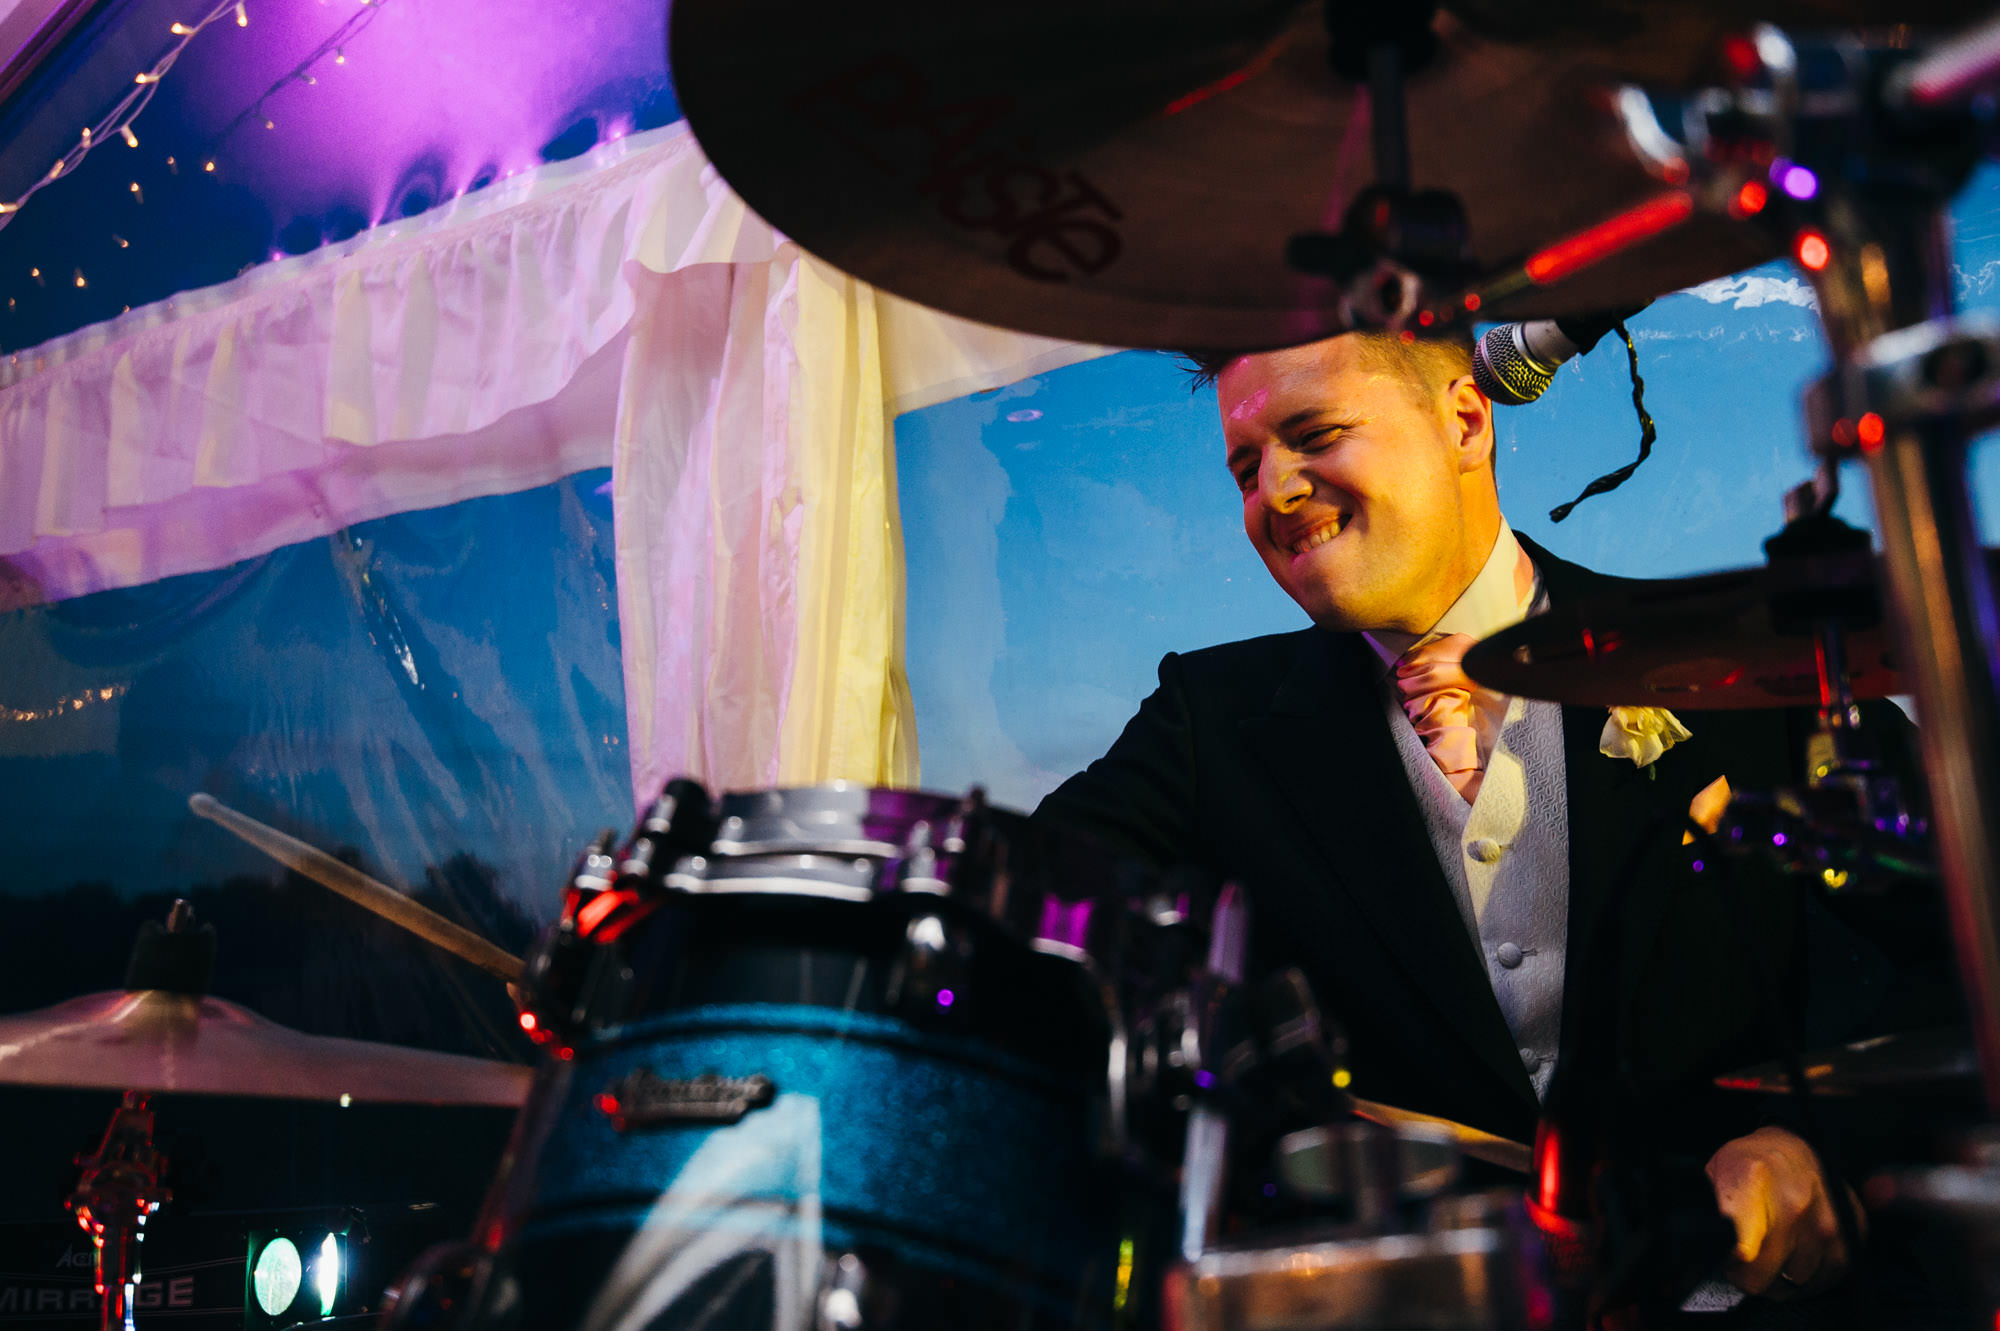 Richard Laws drumming with band